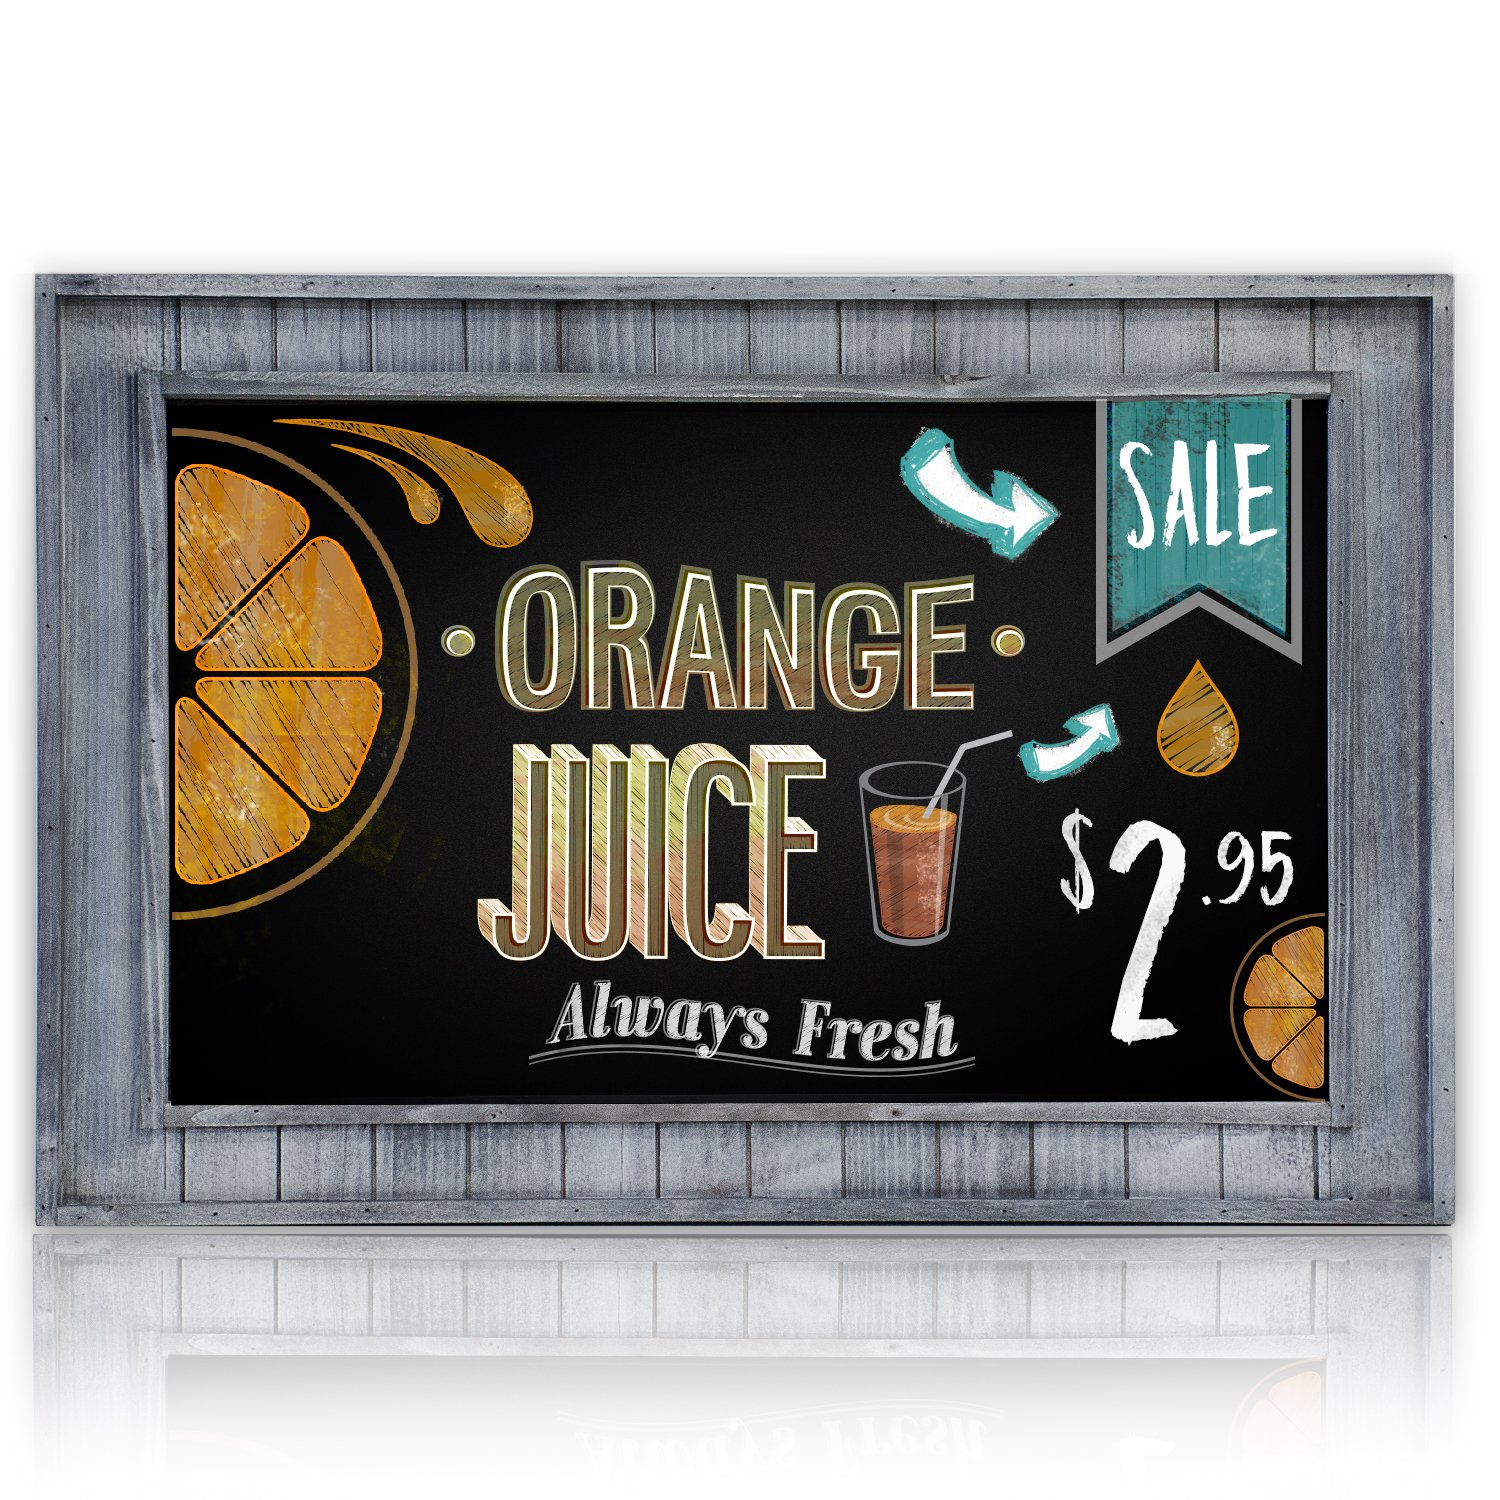 Large Decorative Chalkboard Framed with Rustic Gray Inset Frame   20'' x 30''   Wall Mount for Restaurant Menu or Kitchen Decor   Large Writing Area for Memos, Lists, Menus & More!